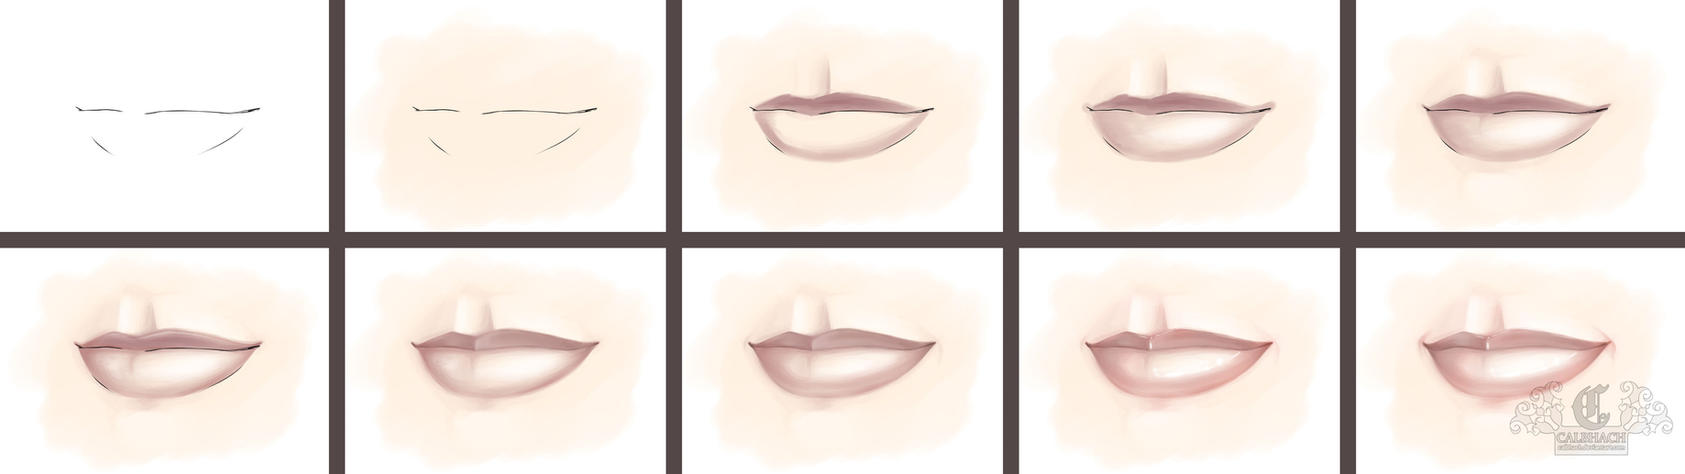 Lips Progression Tutorial by calbhach